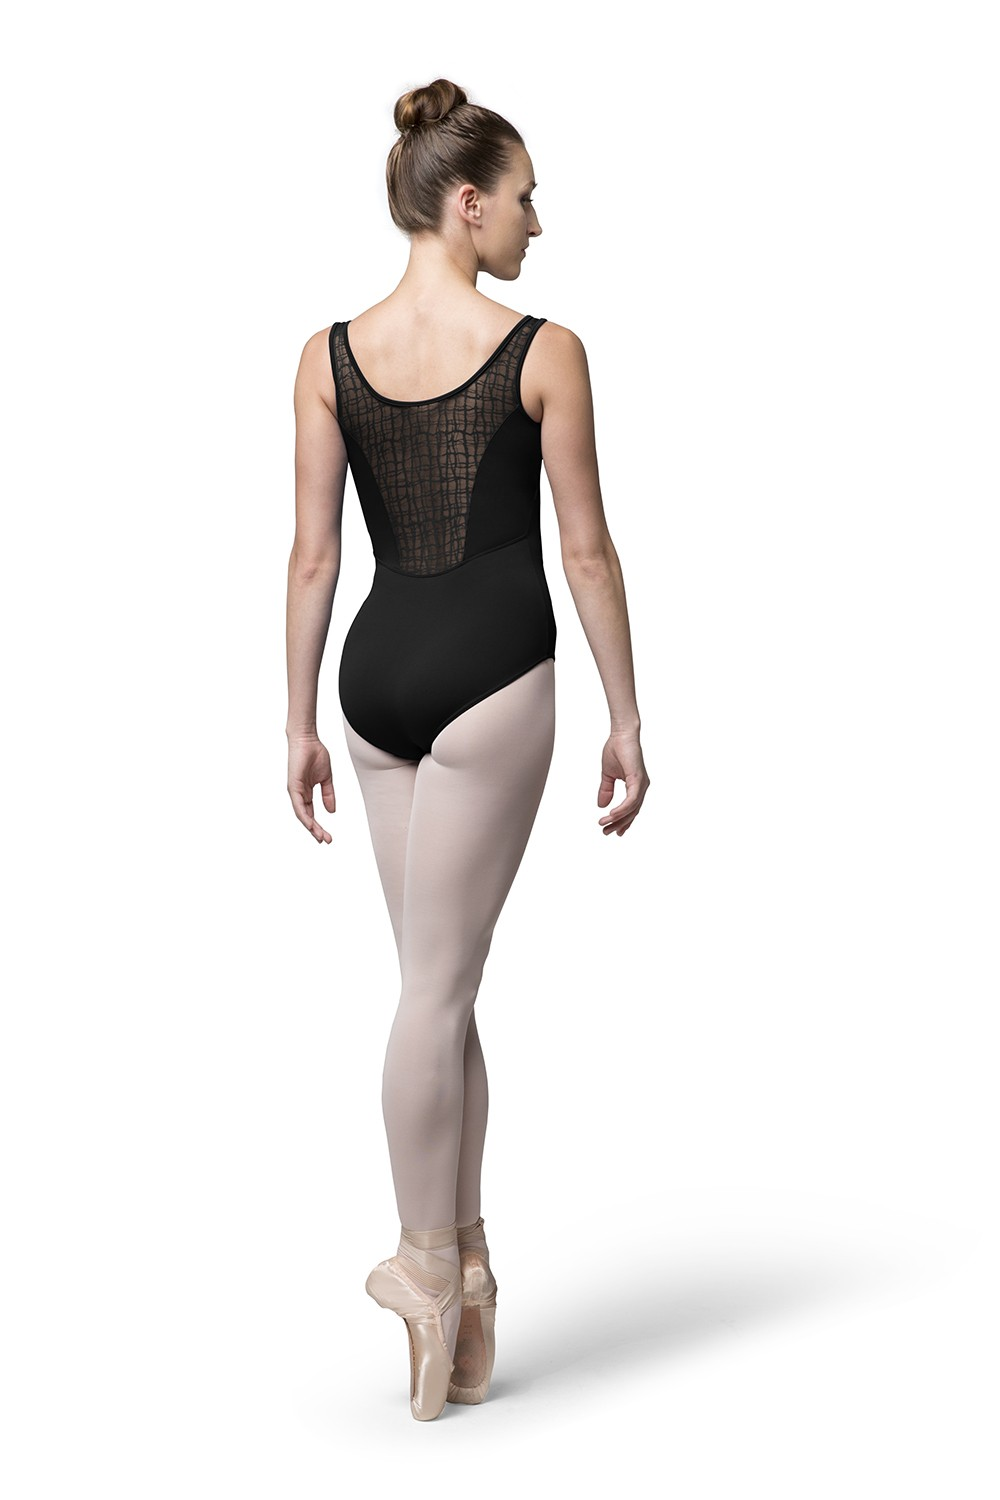 a244b6b7a203 Elegant Women s Ballet   Dance Leotards - BLOCH® Shop UK